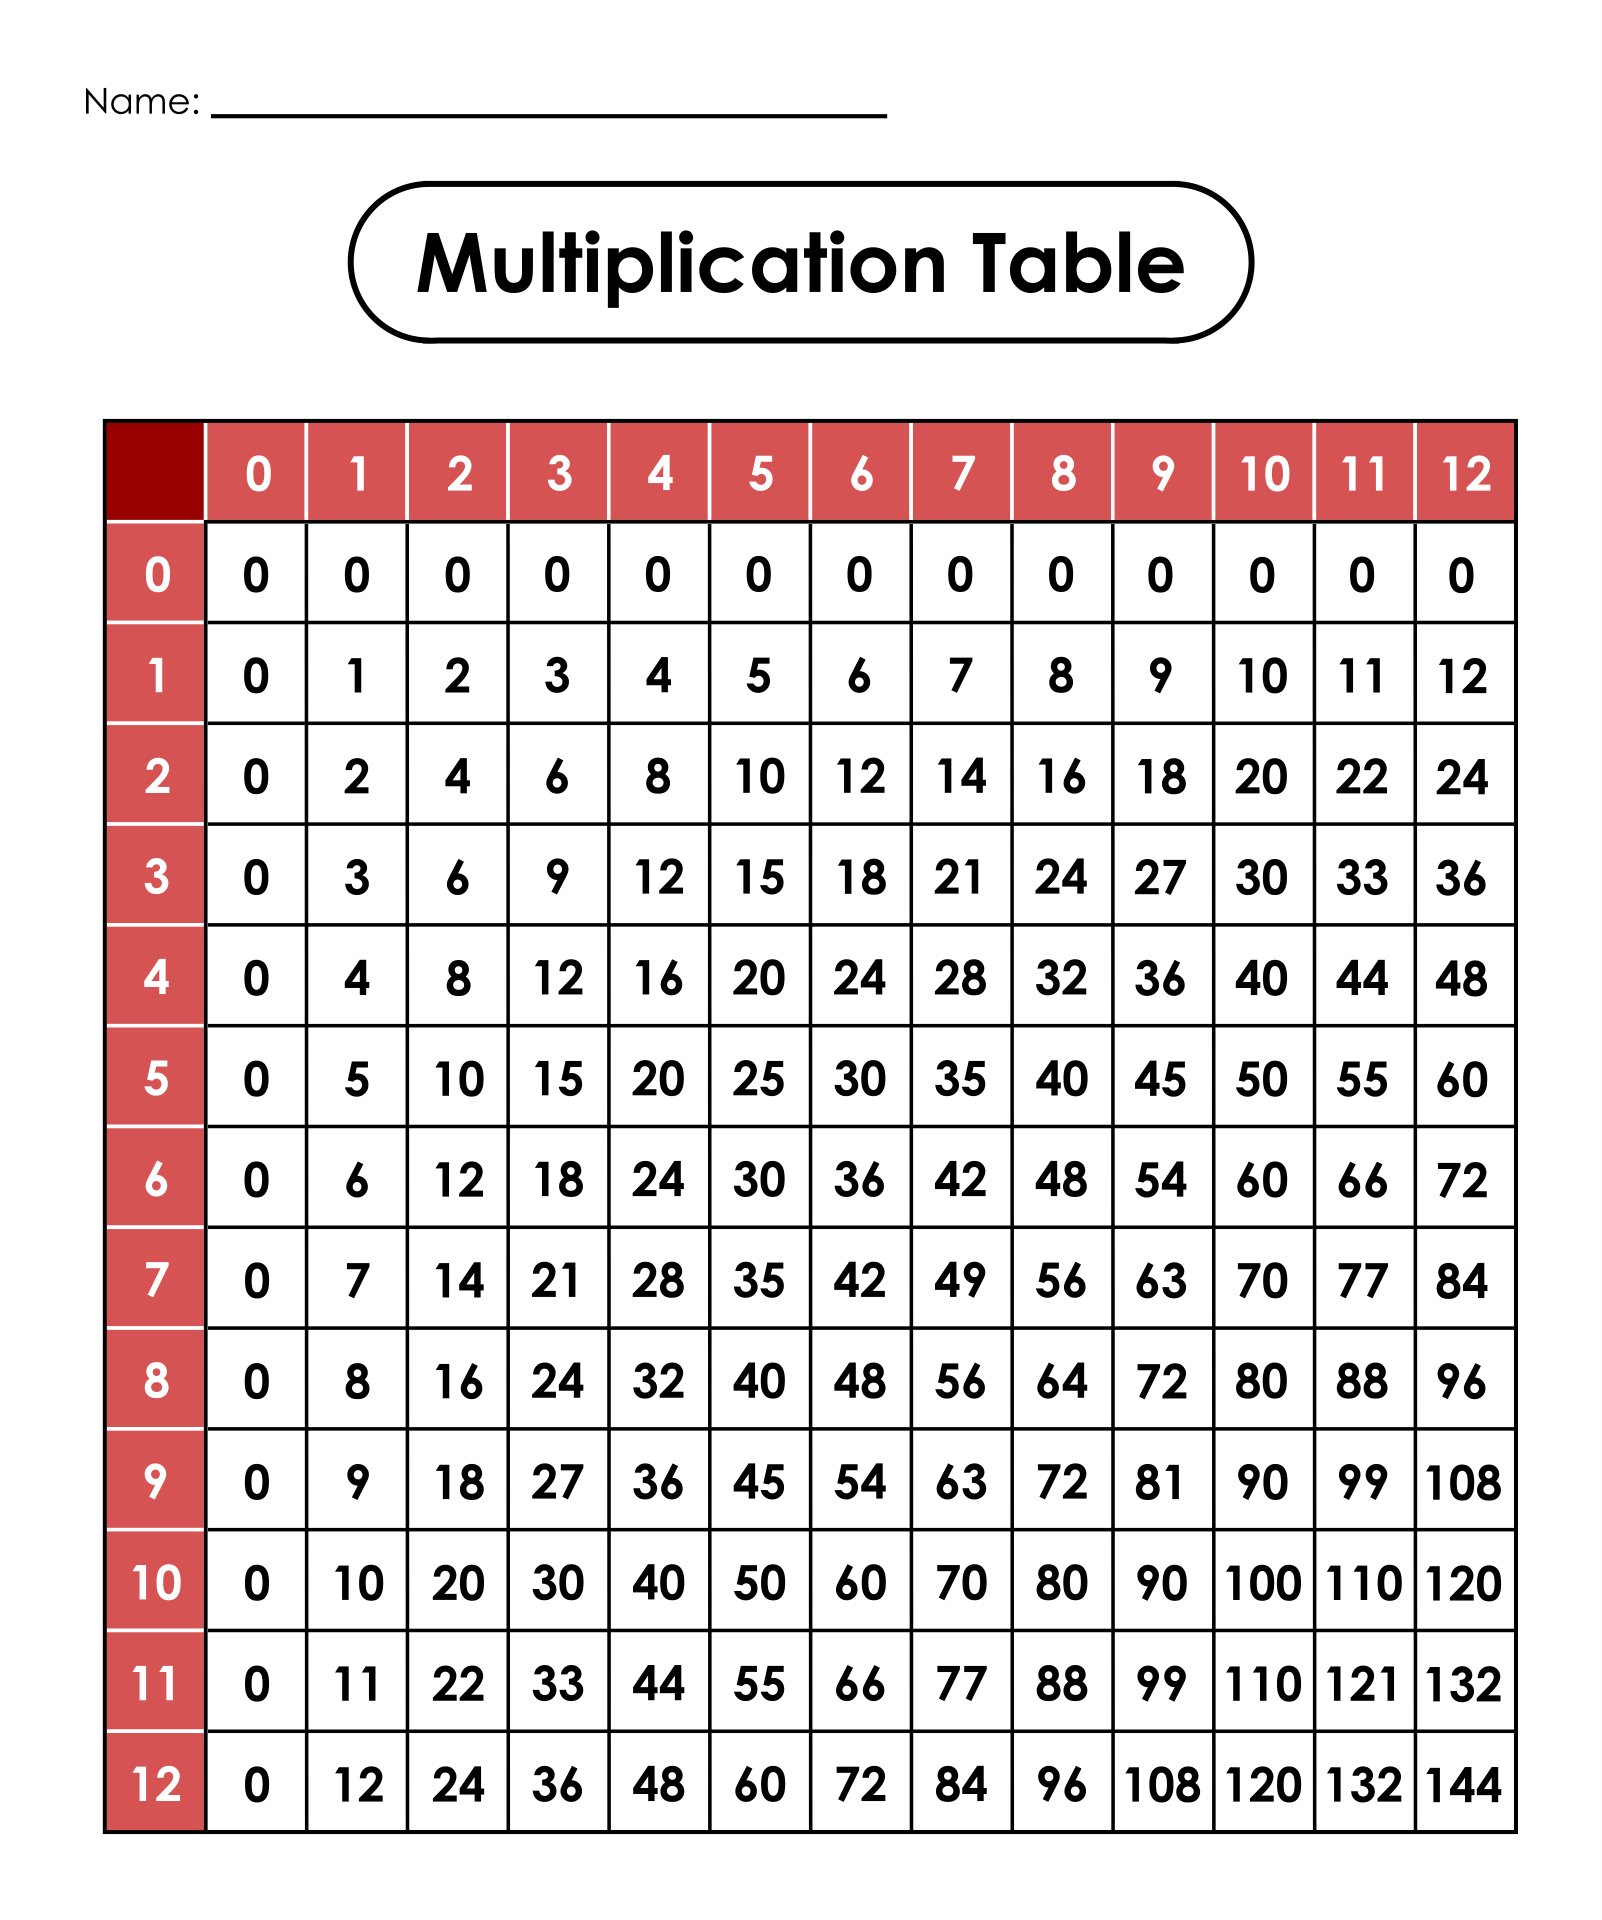 Create multiplication table in excel ratio word problems worksheets 100 muliplacation chart 25 best multiplication tables ideas multiplication chart 0 12 405141 muliplacation gamestrikefo Choice Image